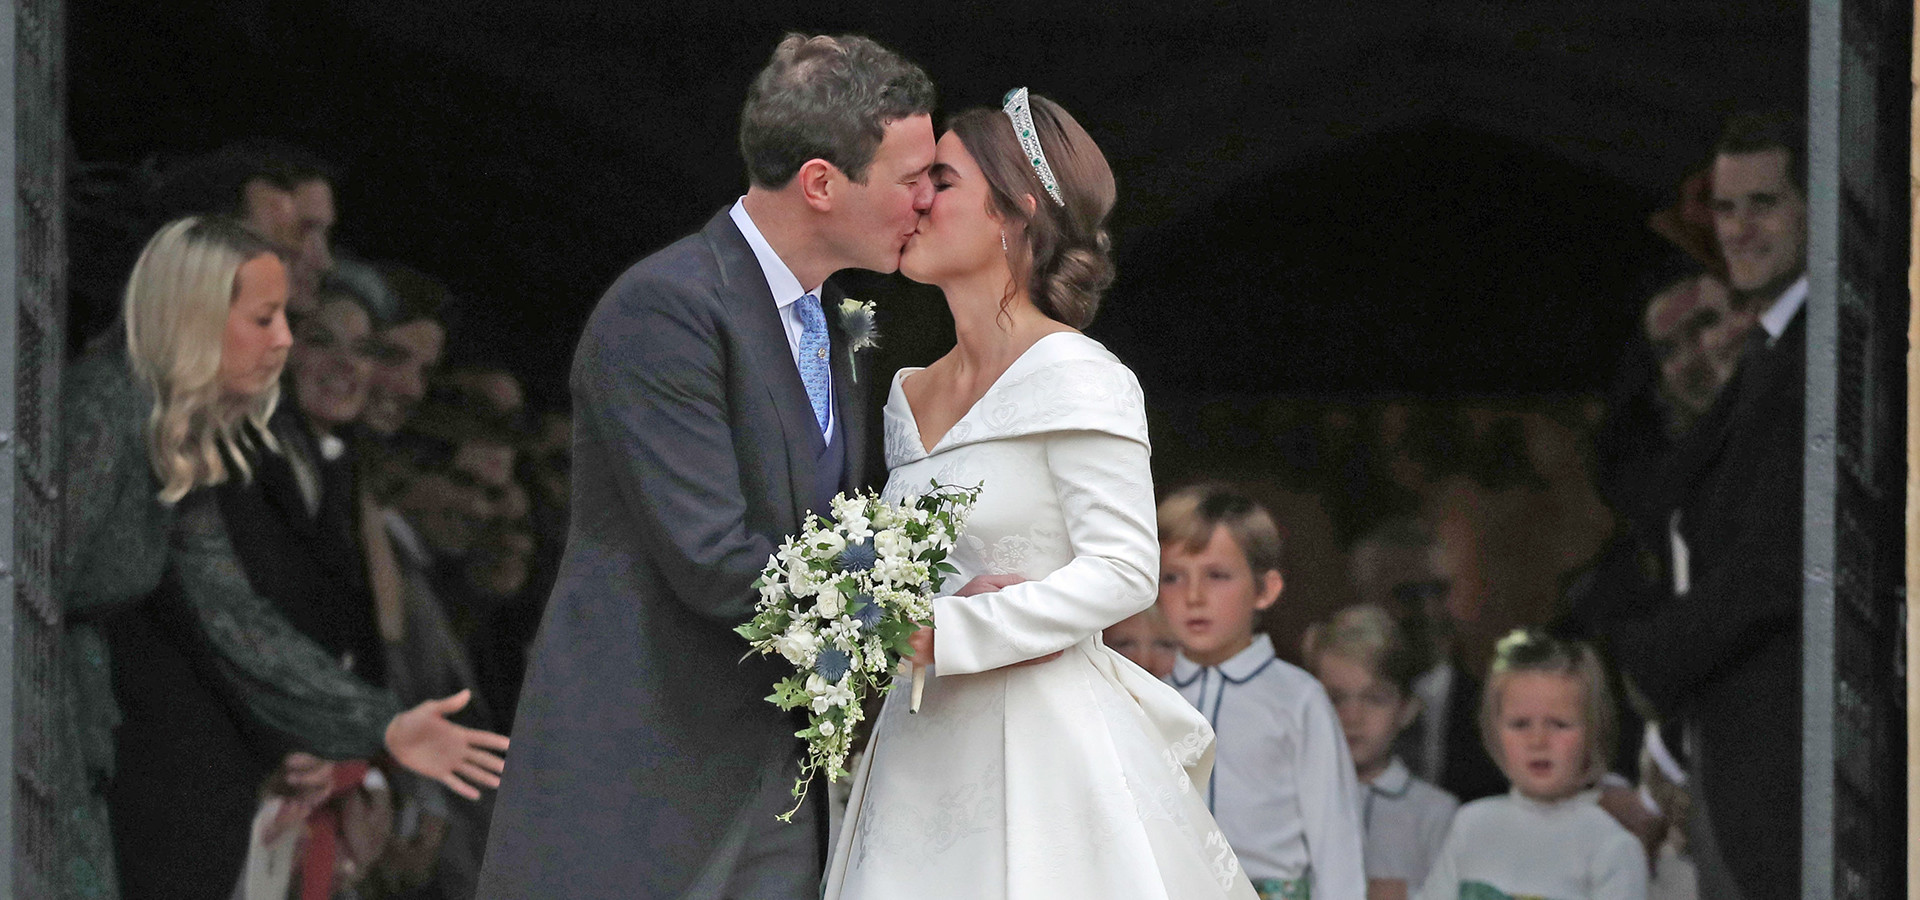 Pictures Of The Royal Wedding.Royal Wedding News Pictures And Videos E News